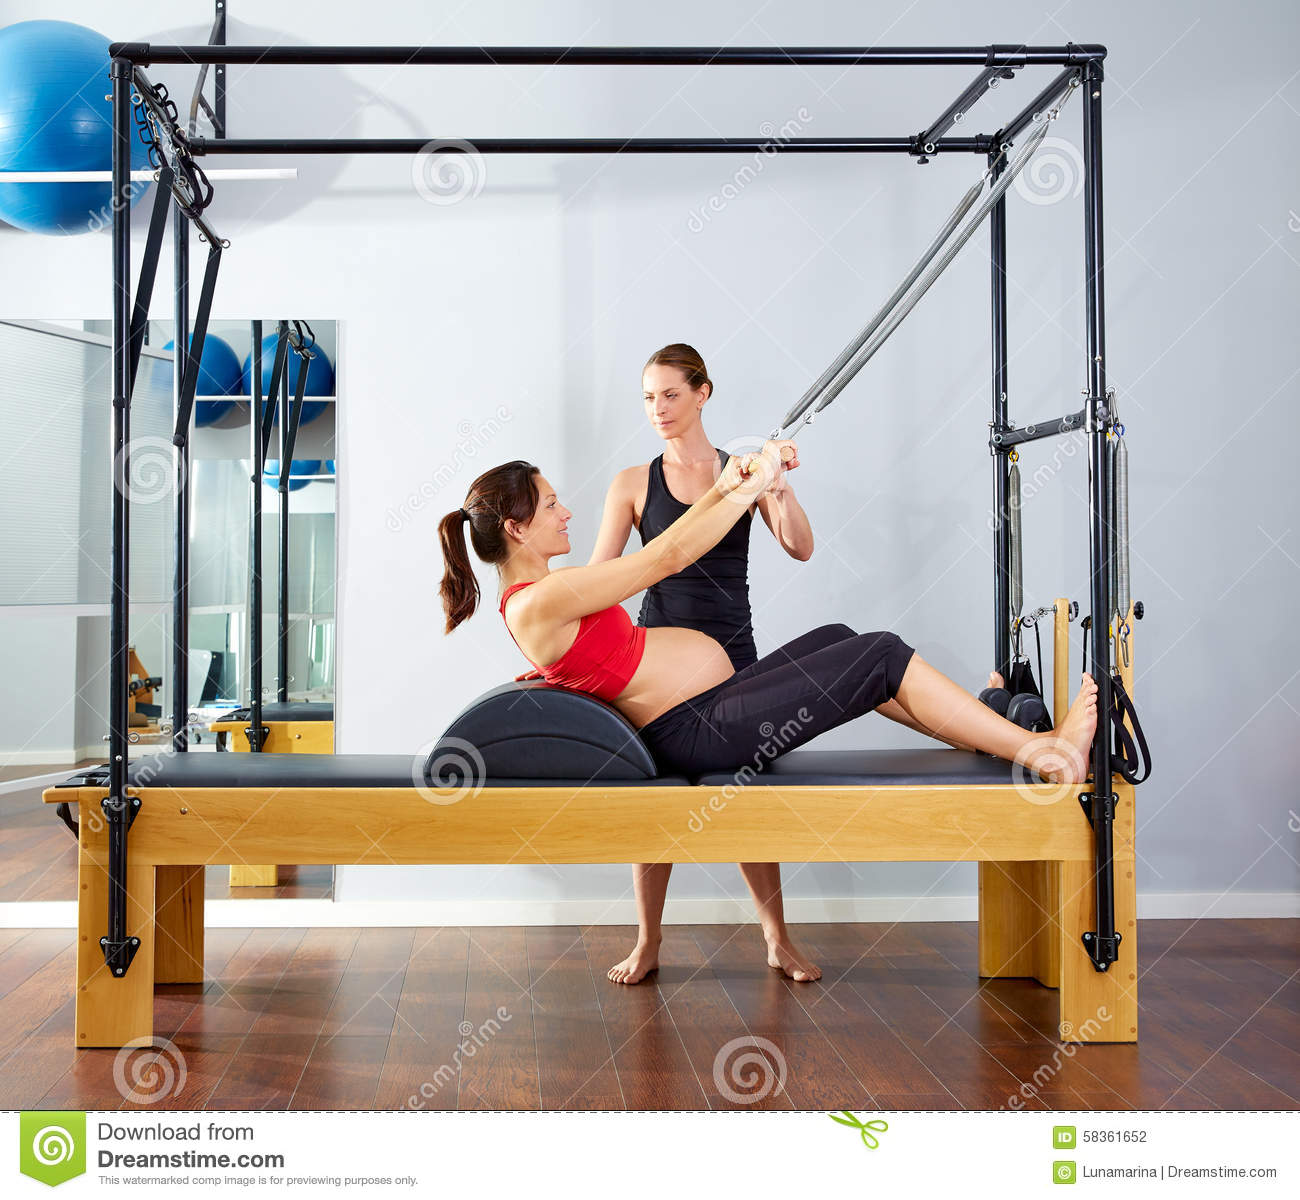 Woman Pilates Chair Exercises Fitness Stock Photo: Pregnant Woman Pilates Reformer Roll Up Exercise Stock